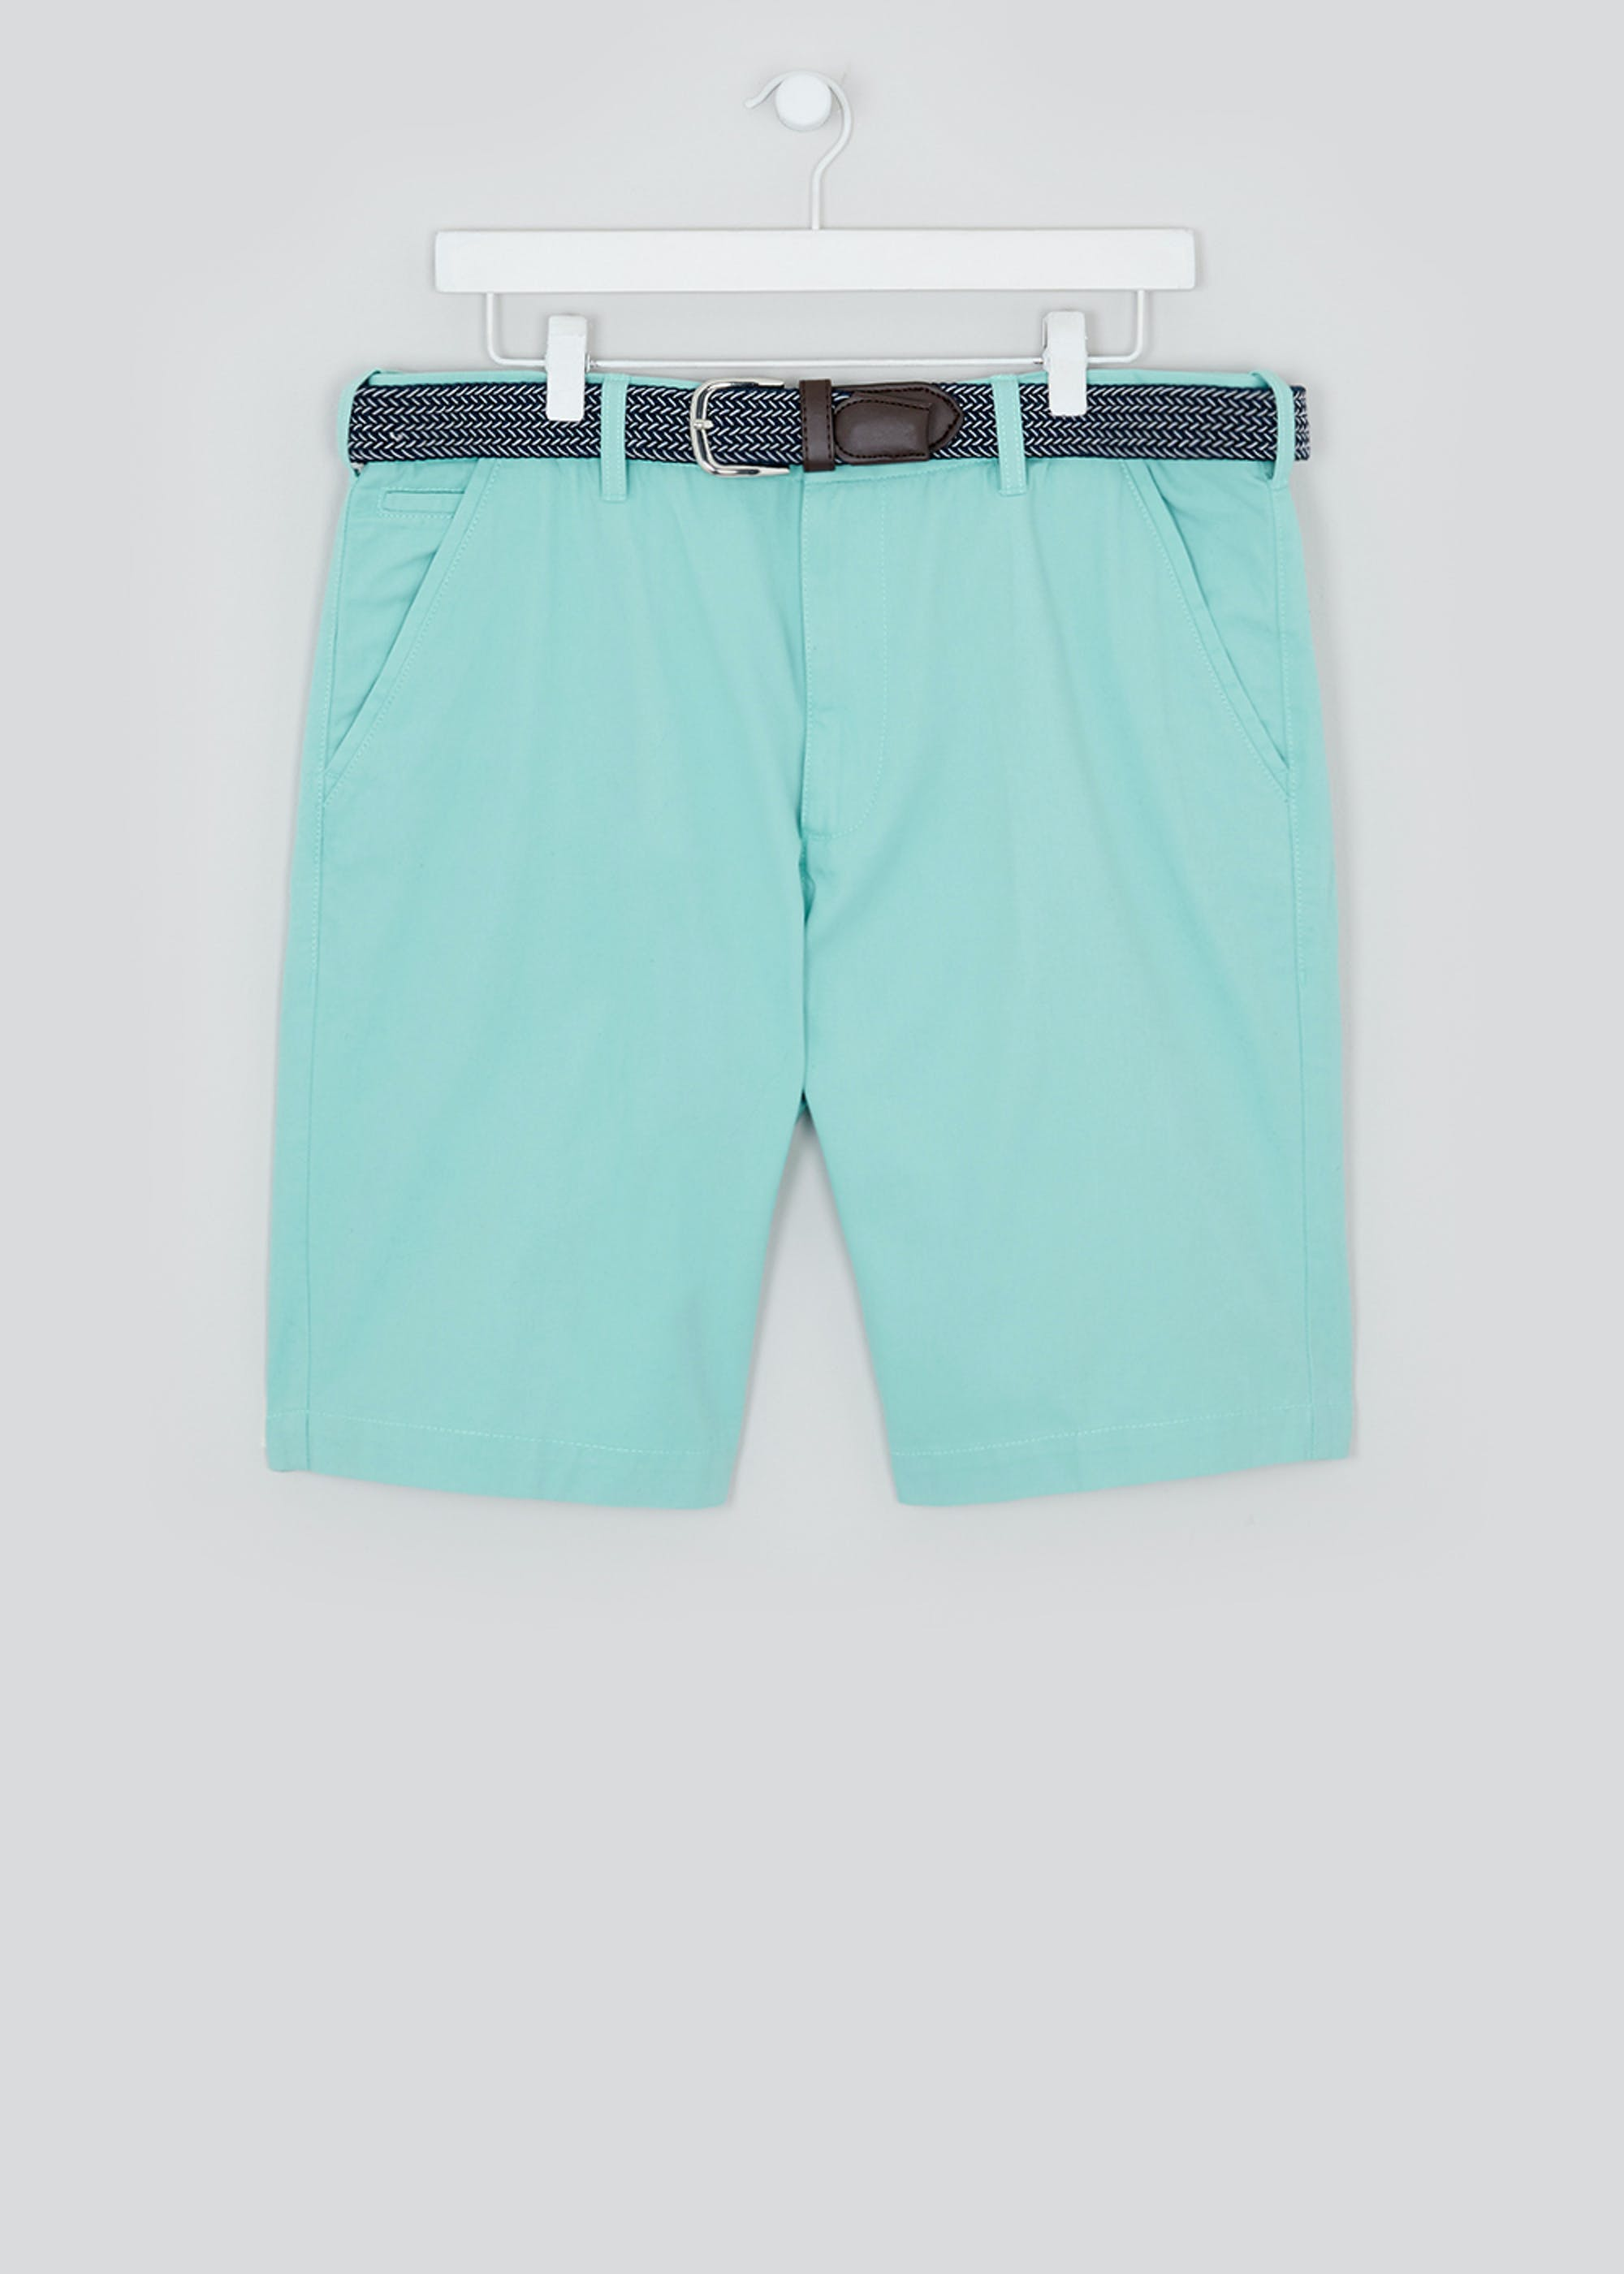 Lincoln Belted Chino Shorts Turquoise MUOz7K